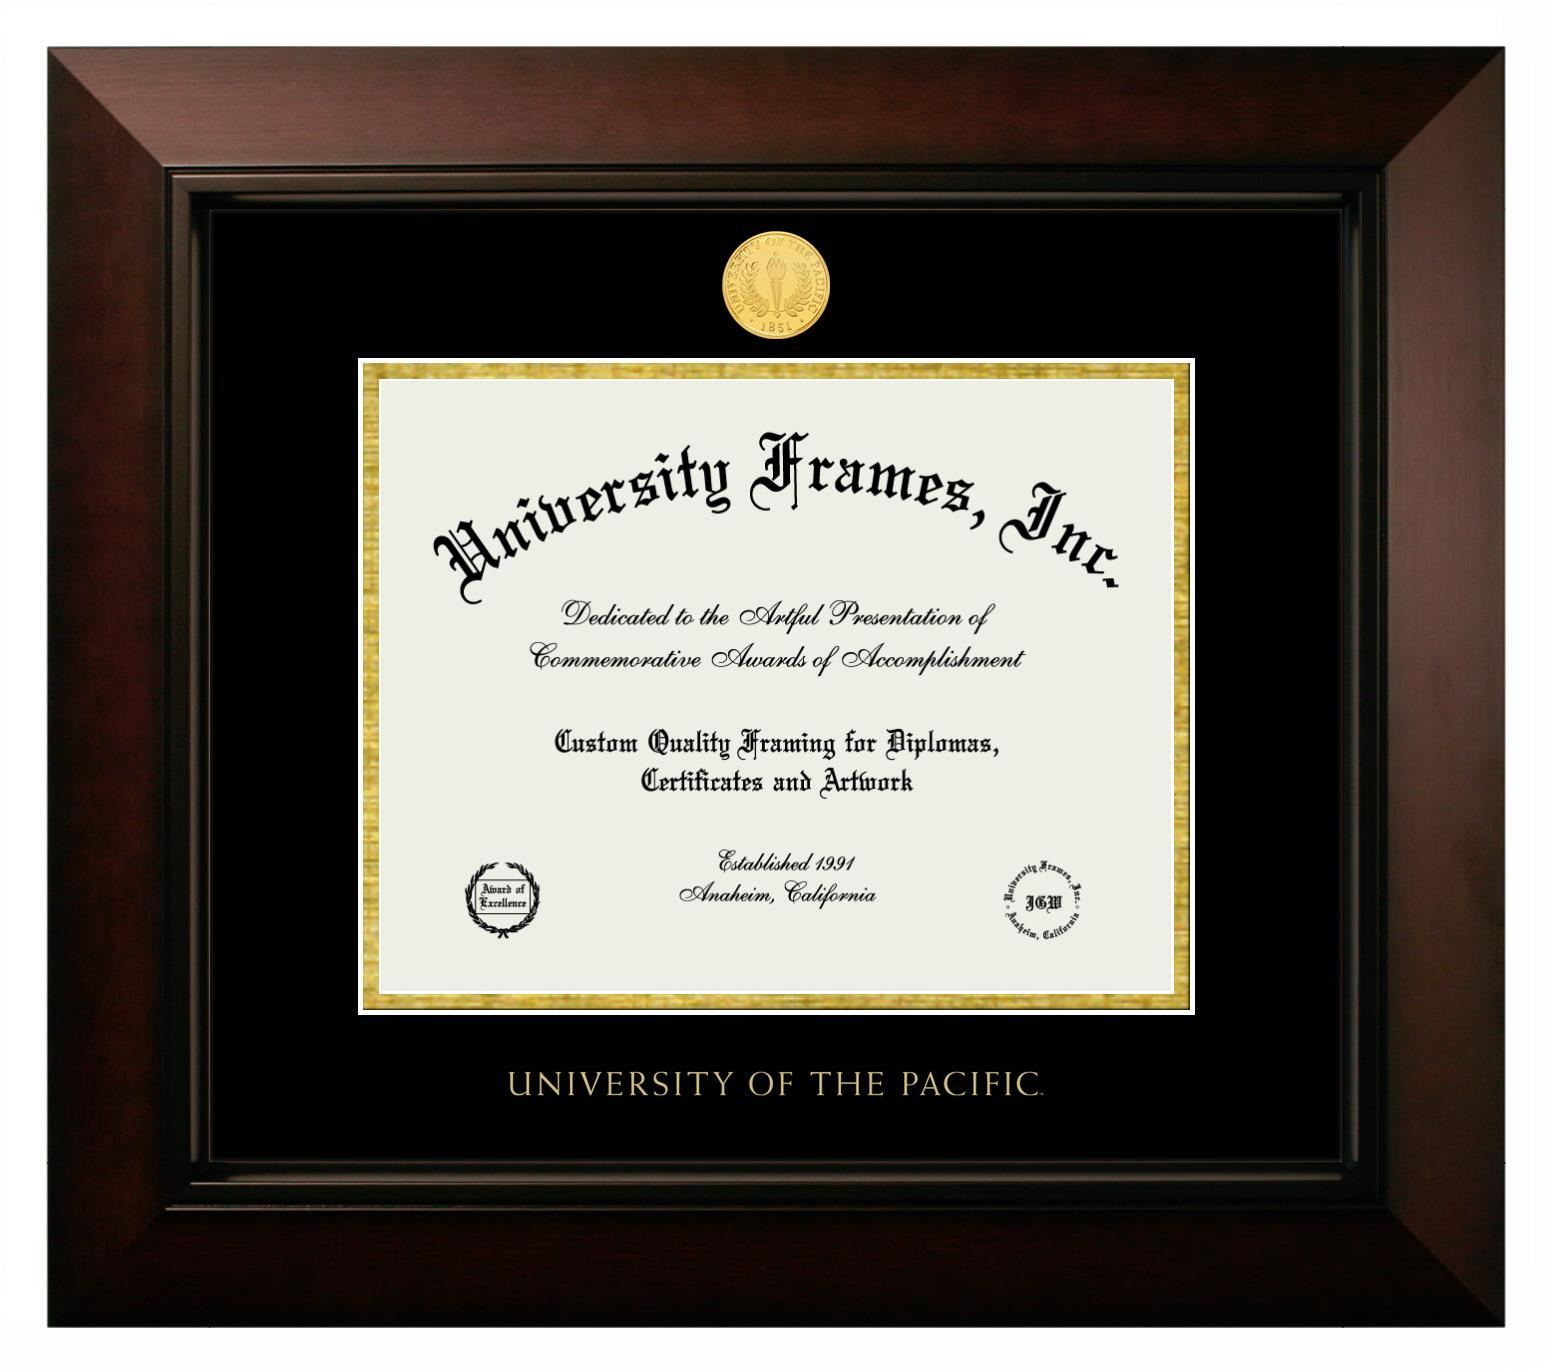 University Of The Pacific Diploma Frame In Legacy Black Cherry With Black Gold Mats